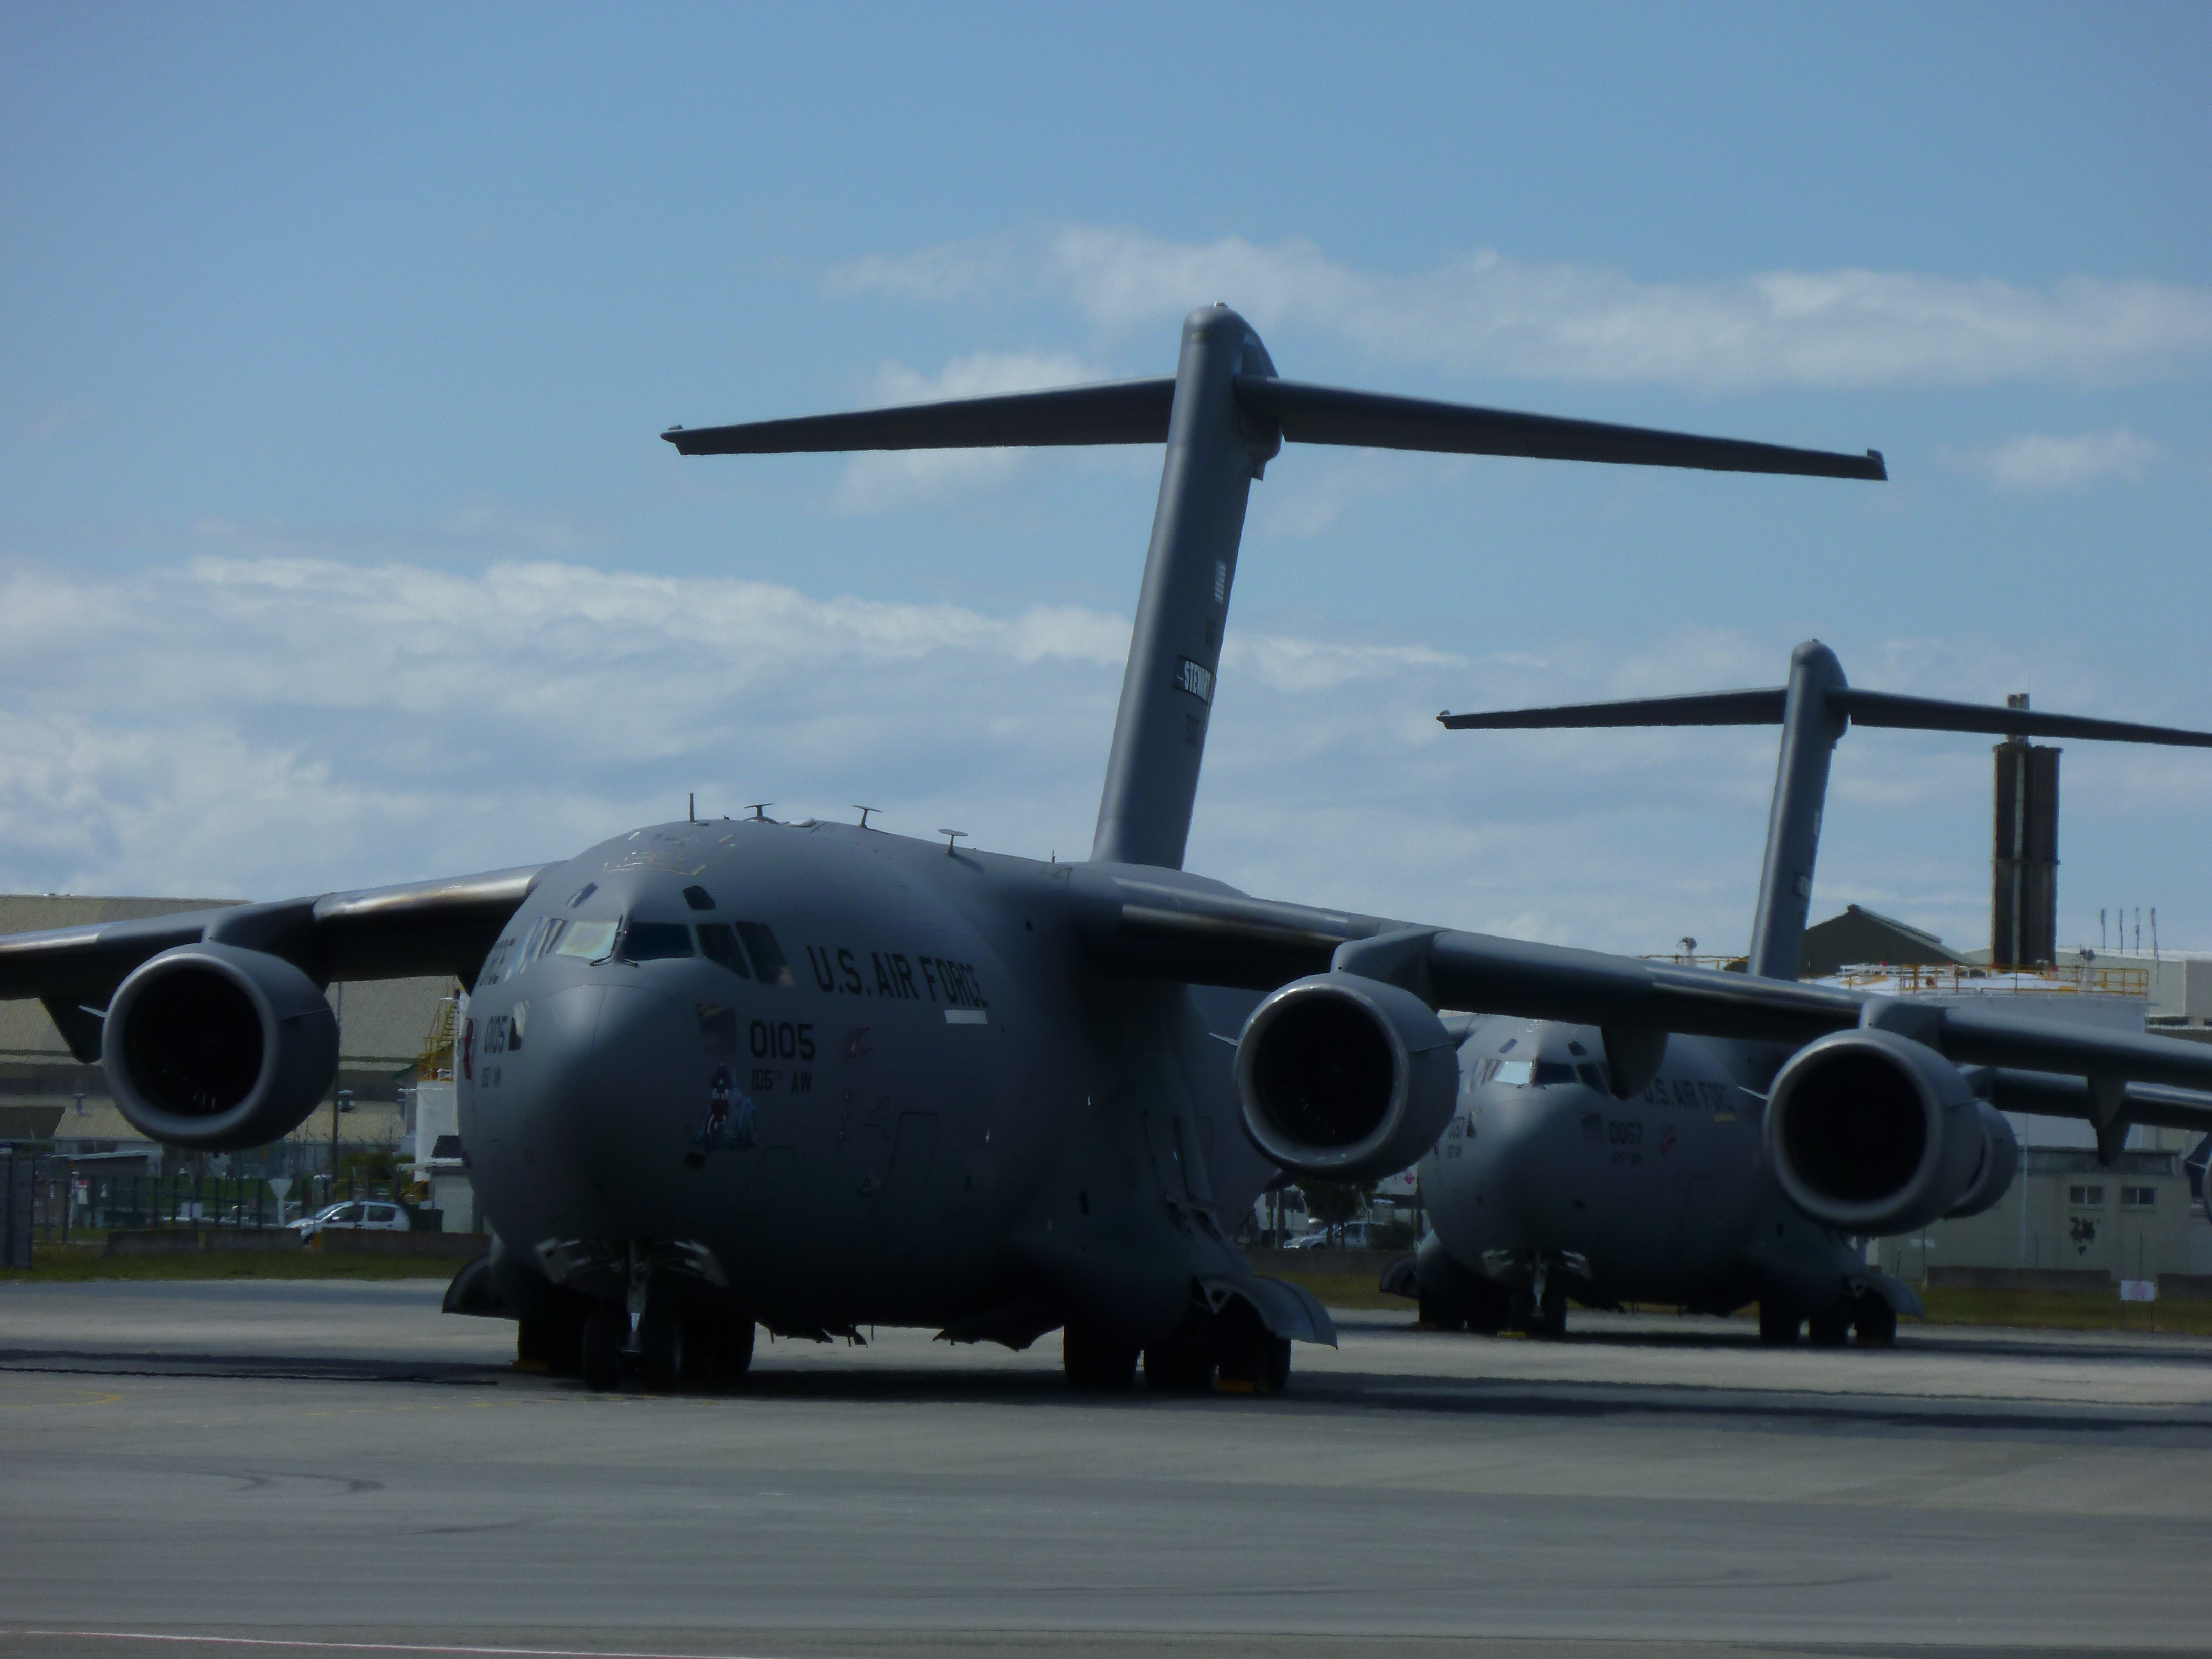 US Troop Transports at the Christchurch International Airport. (Photo by Snoopman)